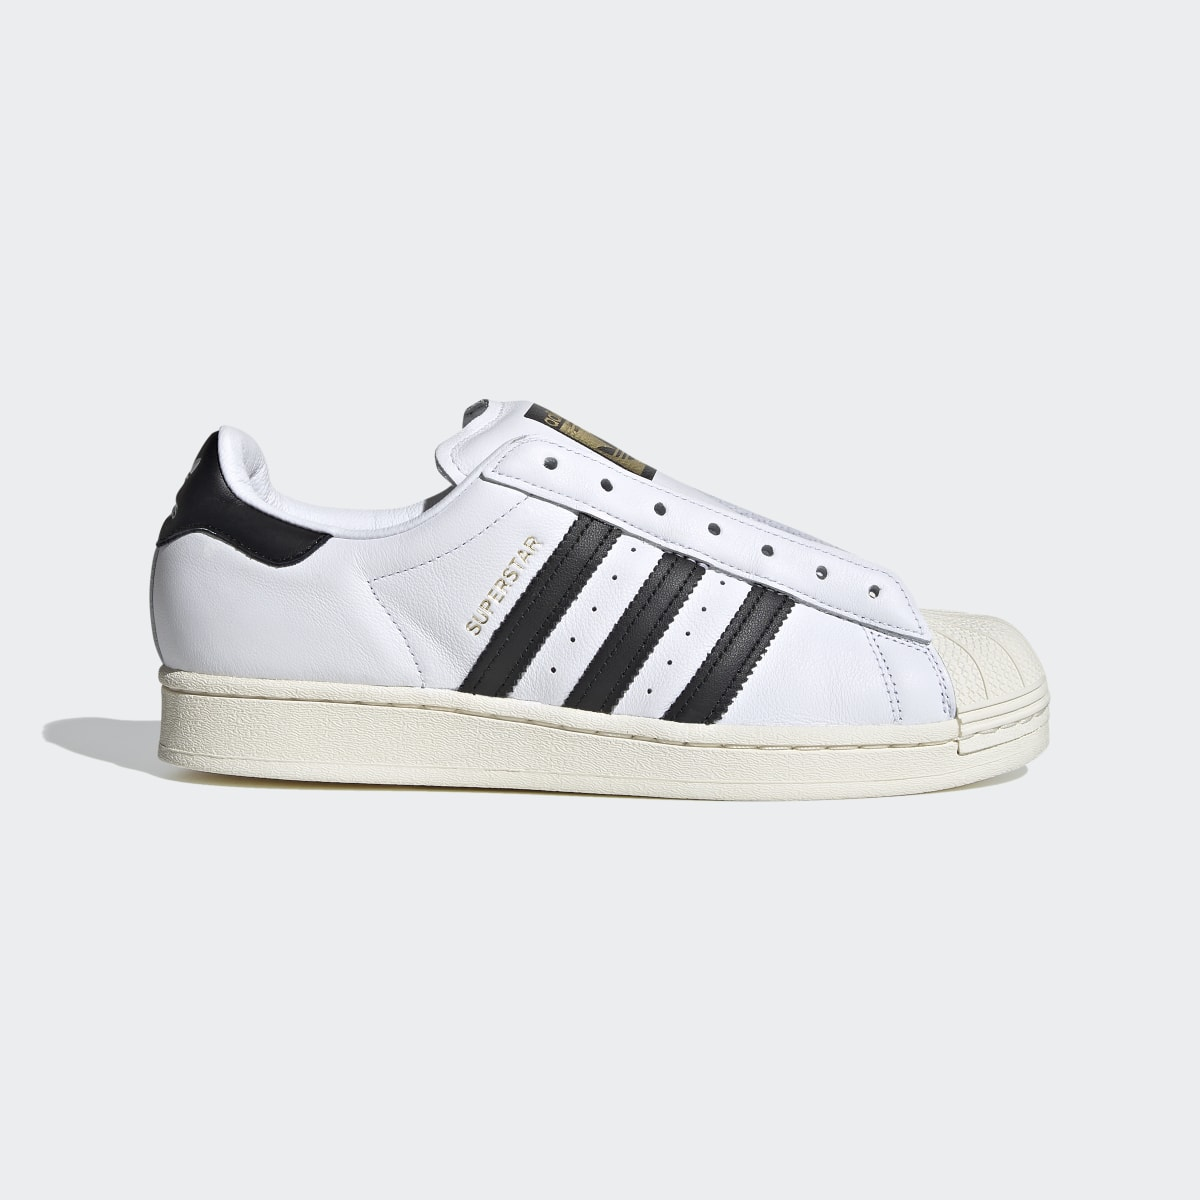 adidas originals donna superstar 80s metal toe scarpe da ginnastica ecru bronze